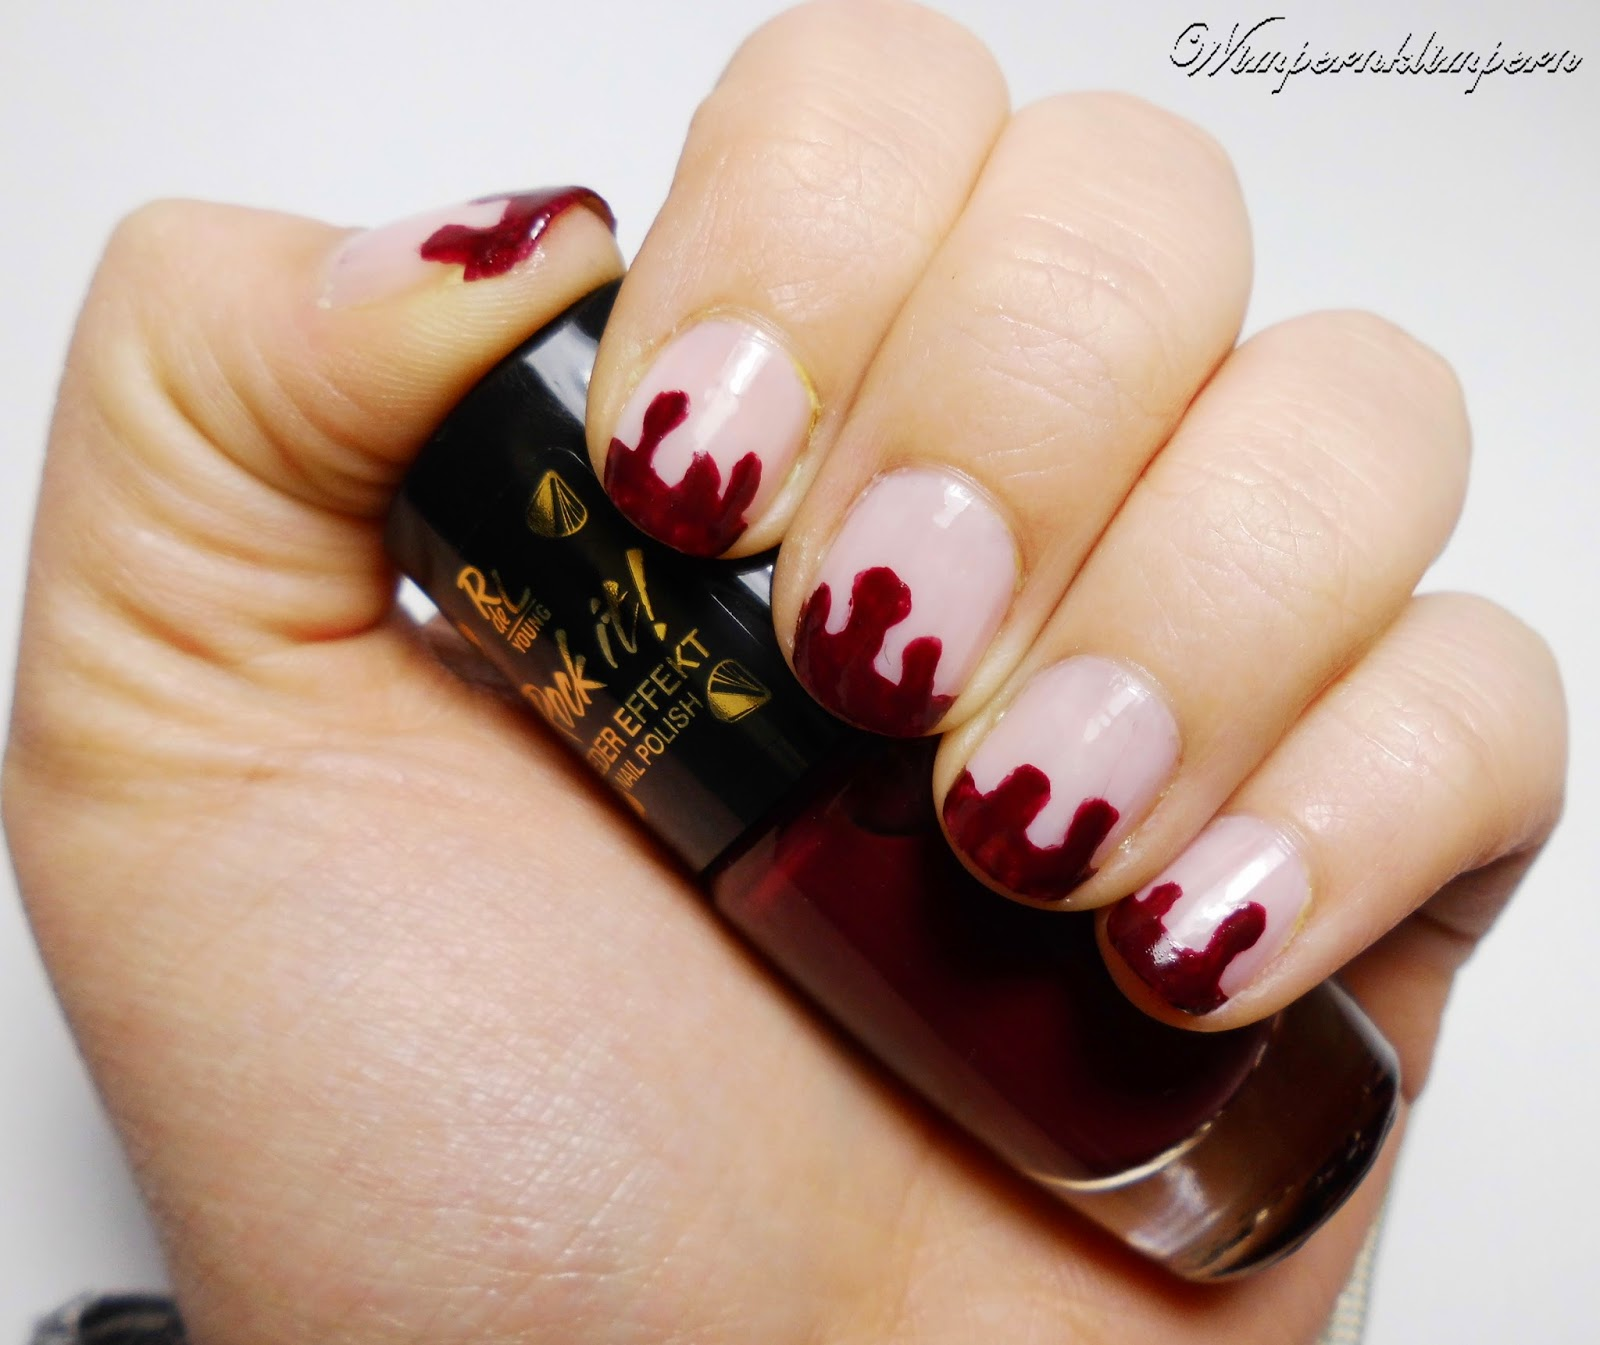 Halloween Nägel.Wimpernklimpern Nageldesign Halloween Nägel